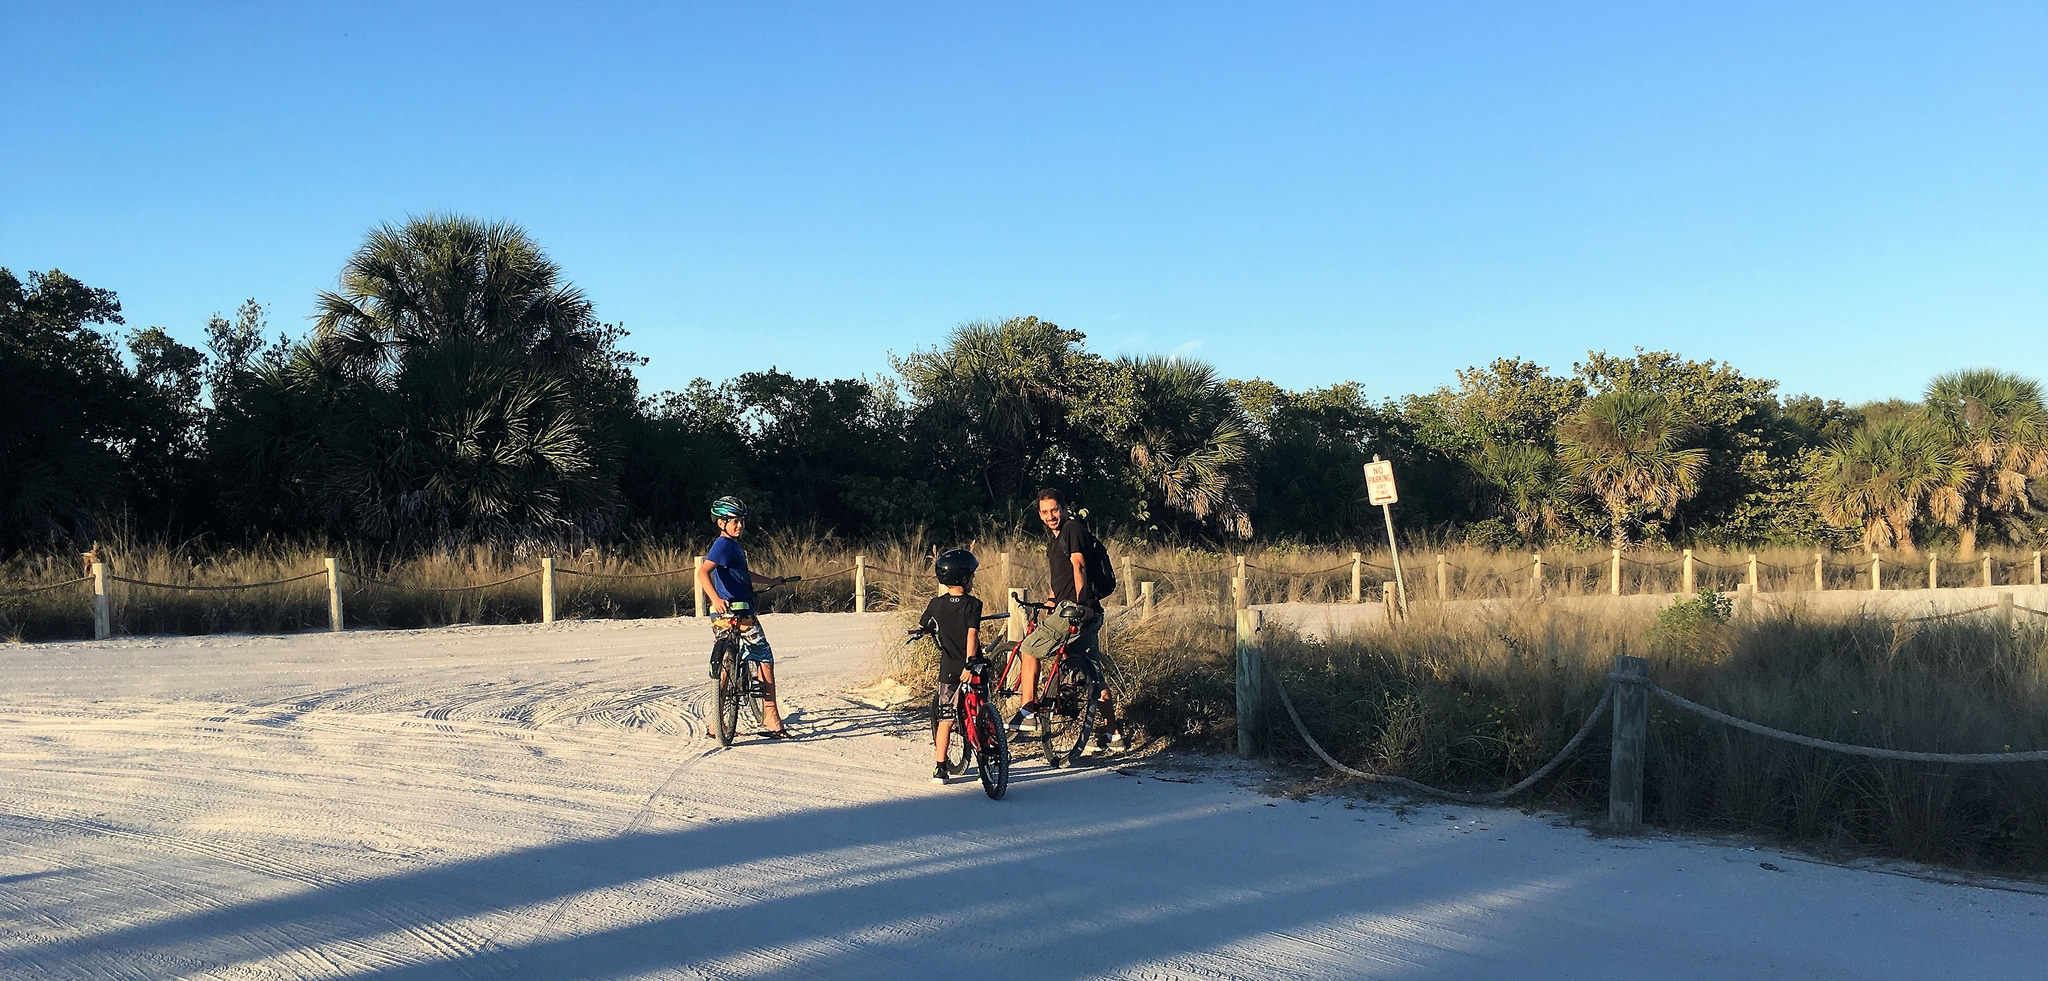 Things to do Manasota Key Florida - ride off the beaten paths and explore the parks.